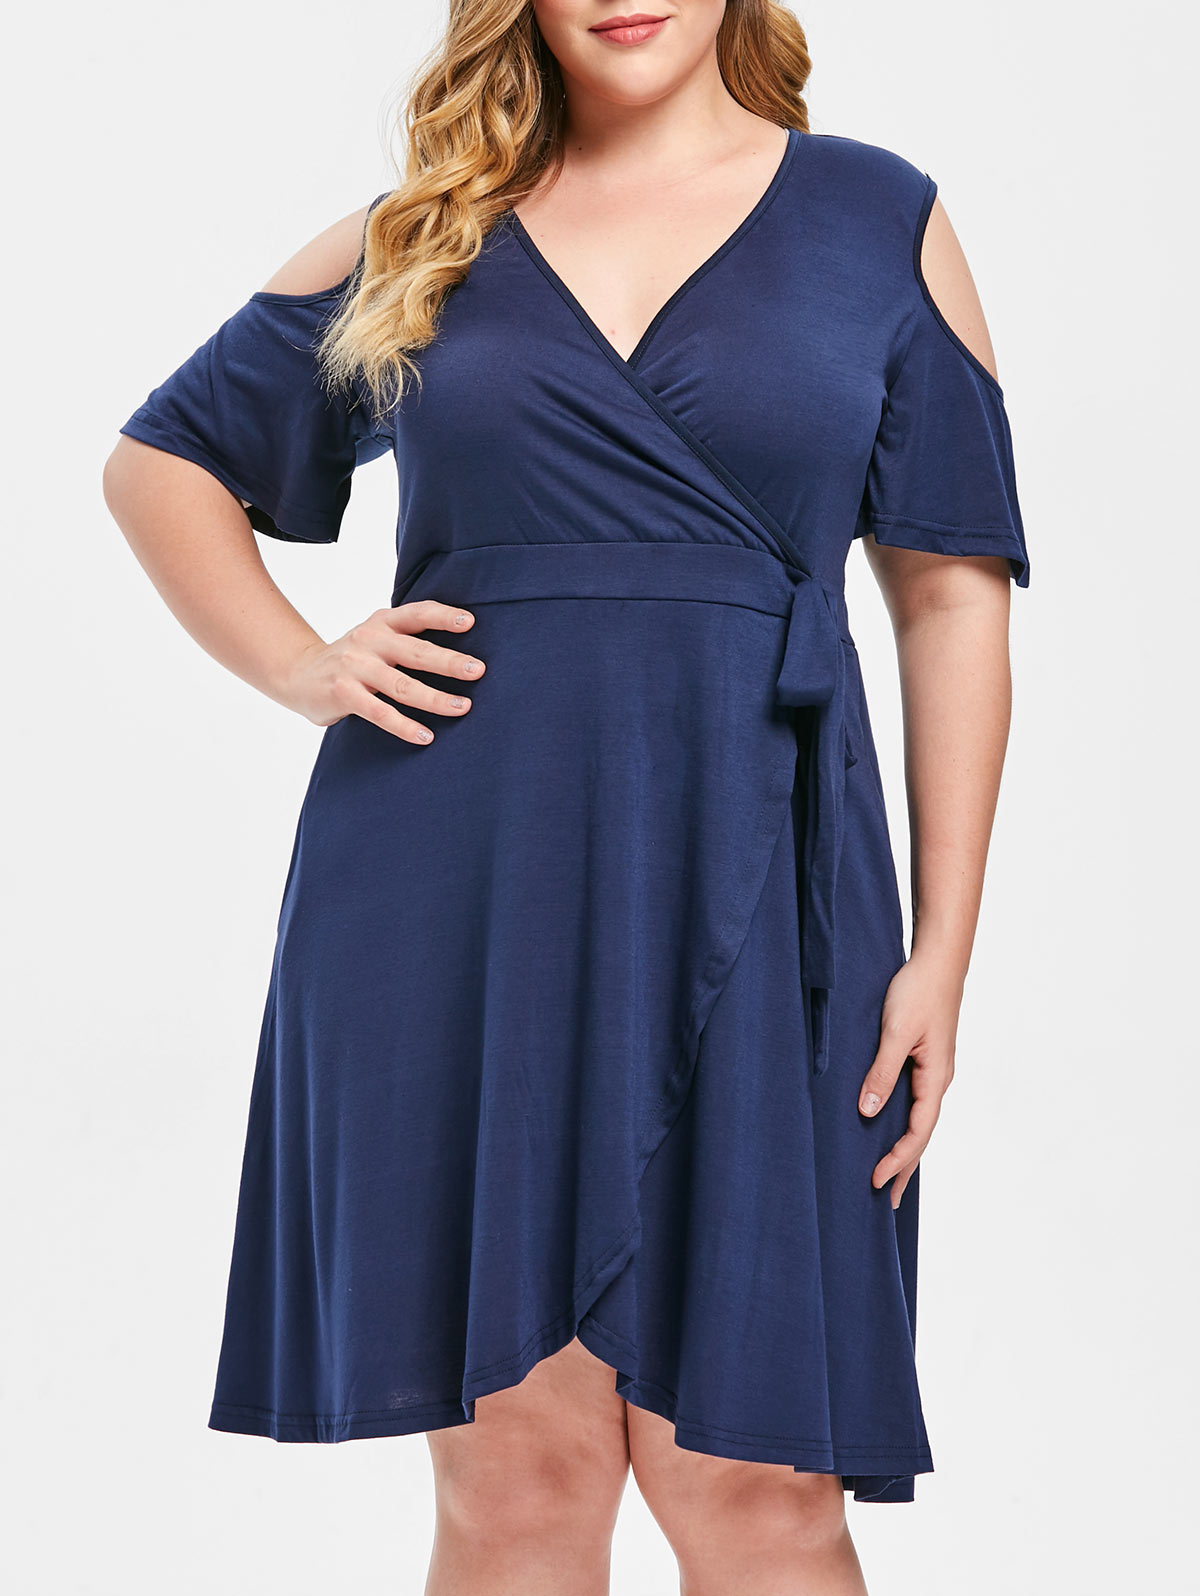 cd29452bcc Details about Women Open Shoulder Half Sleeve Plus Size Fit And Flare Dress  A Line Party Dress